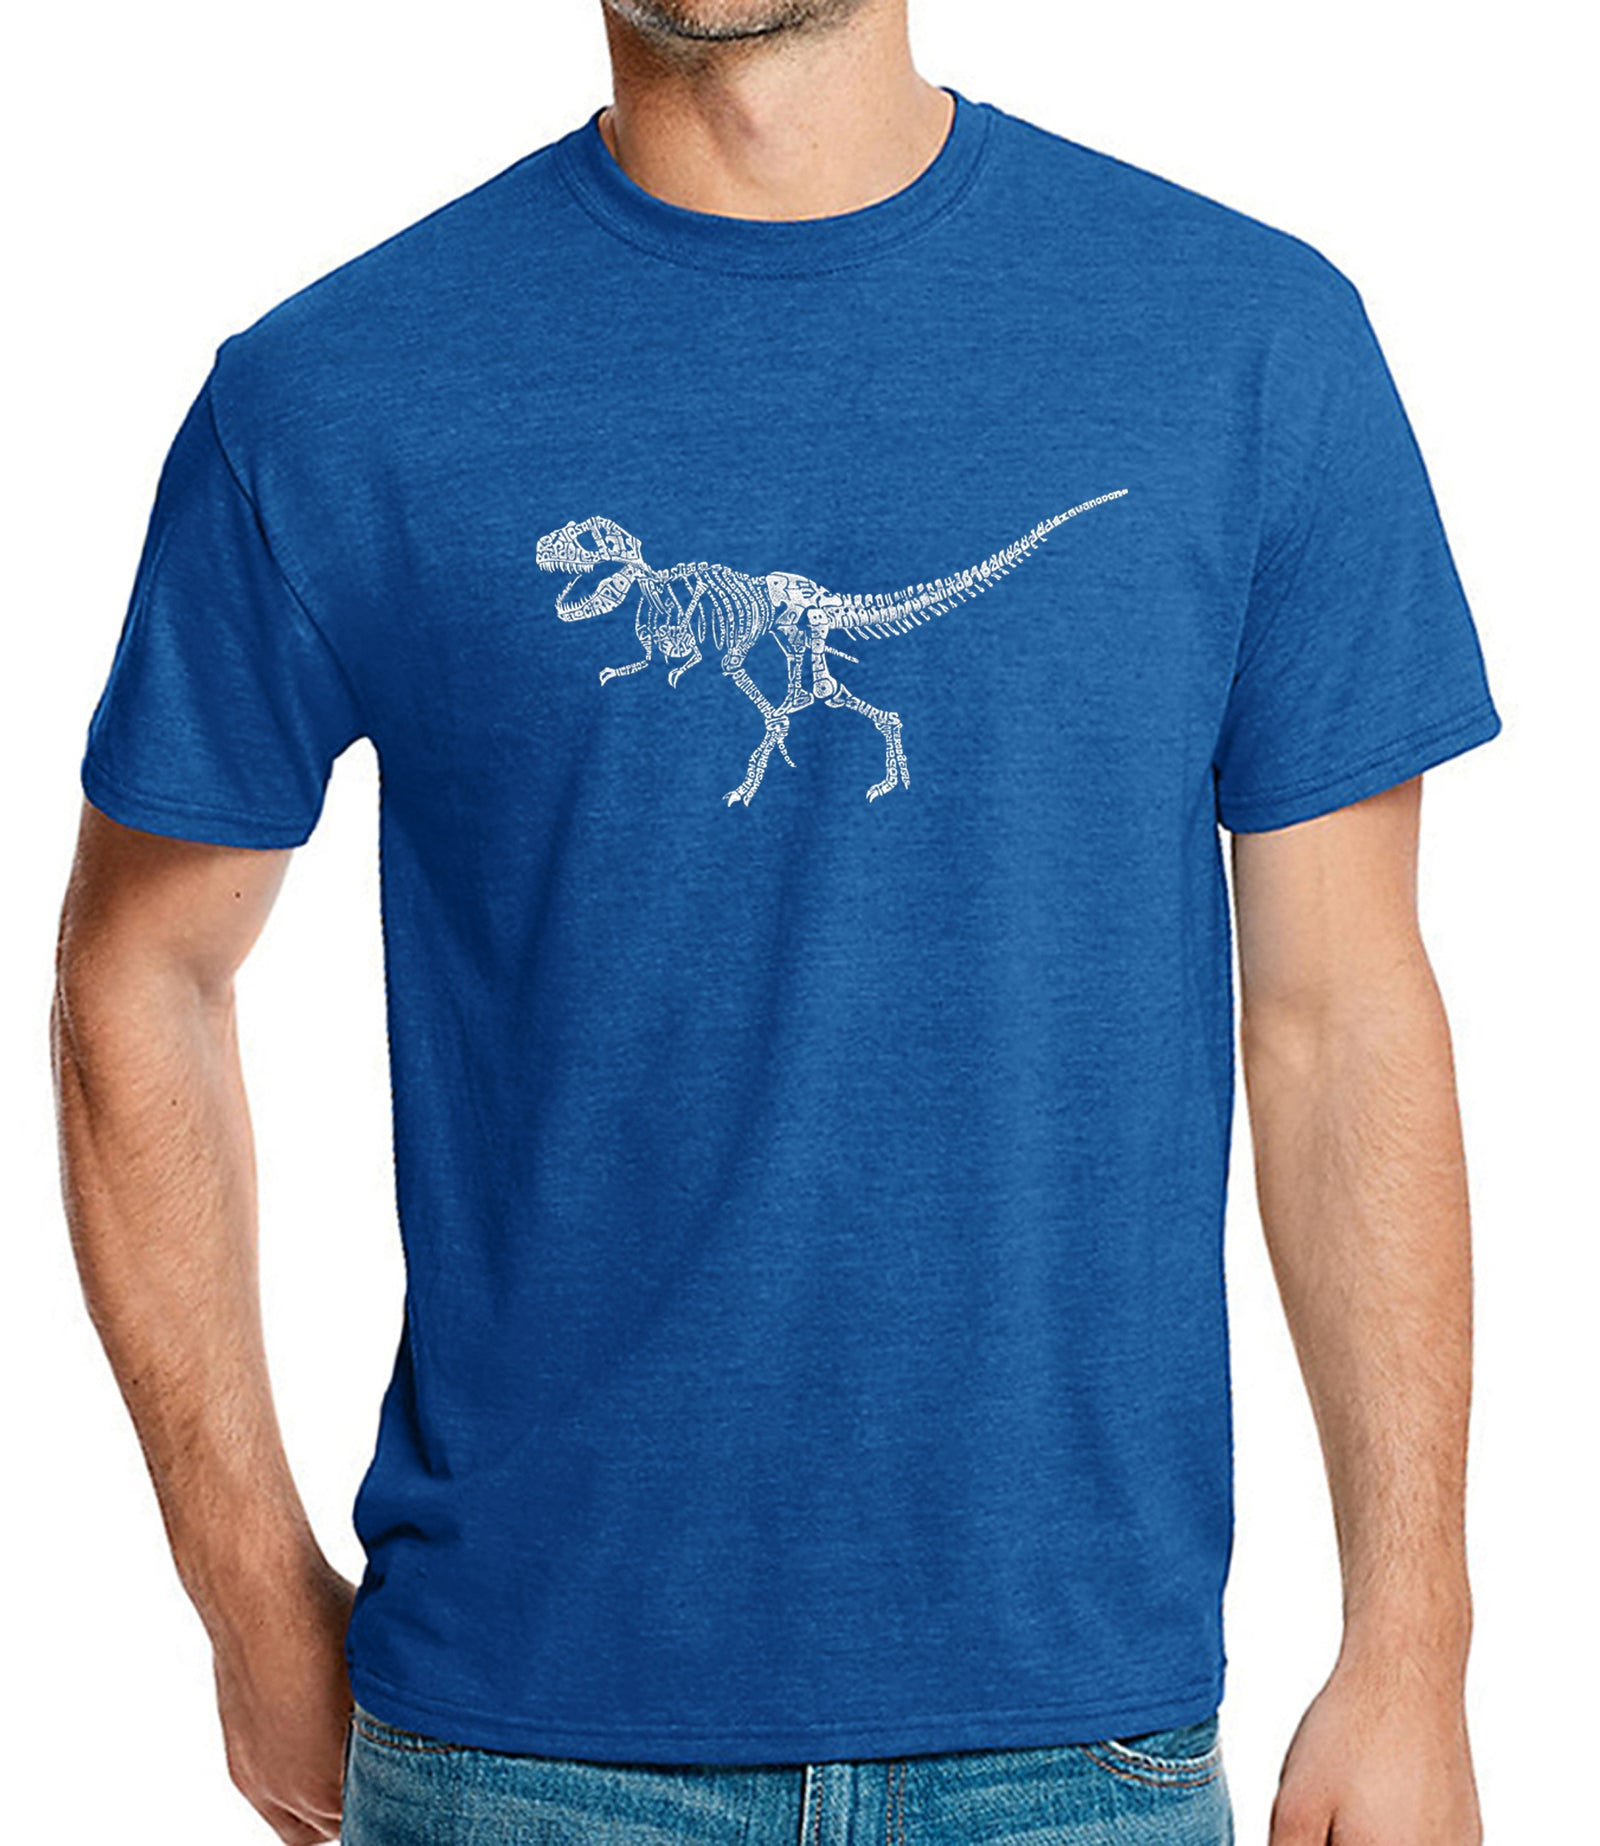 Men's Premium Blend Word Art T-shirt - Dinosaur T-Rex Skeleton